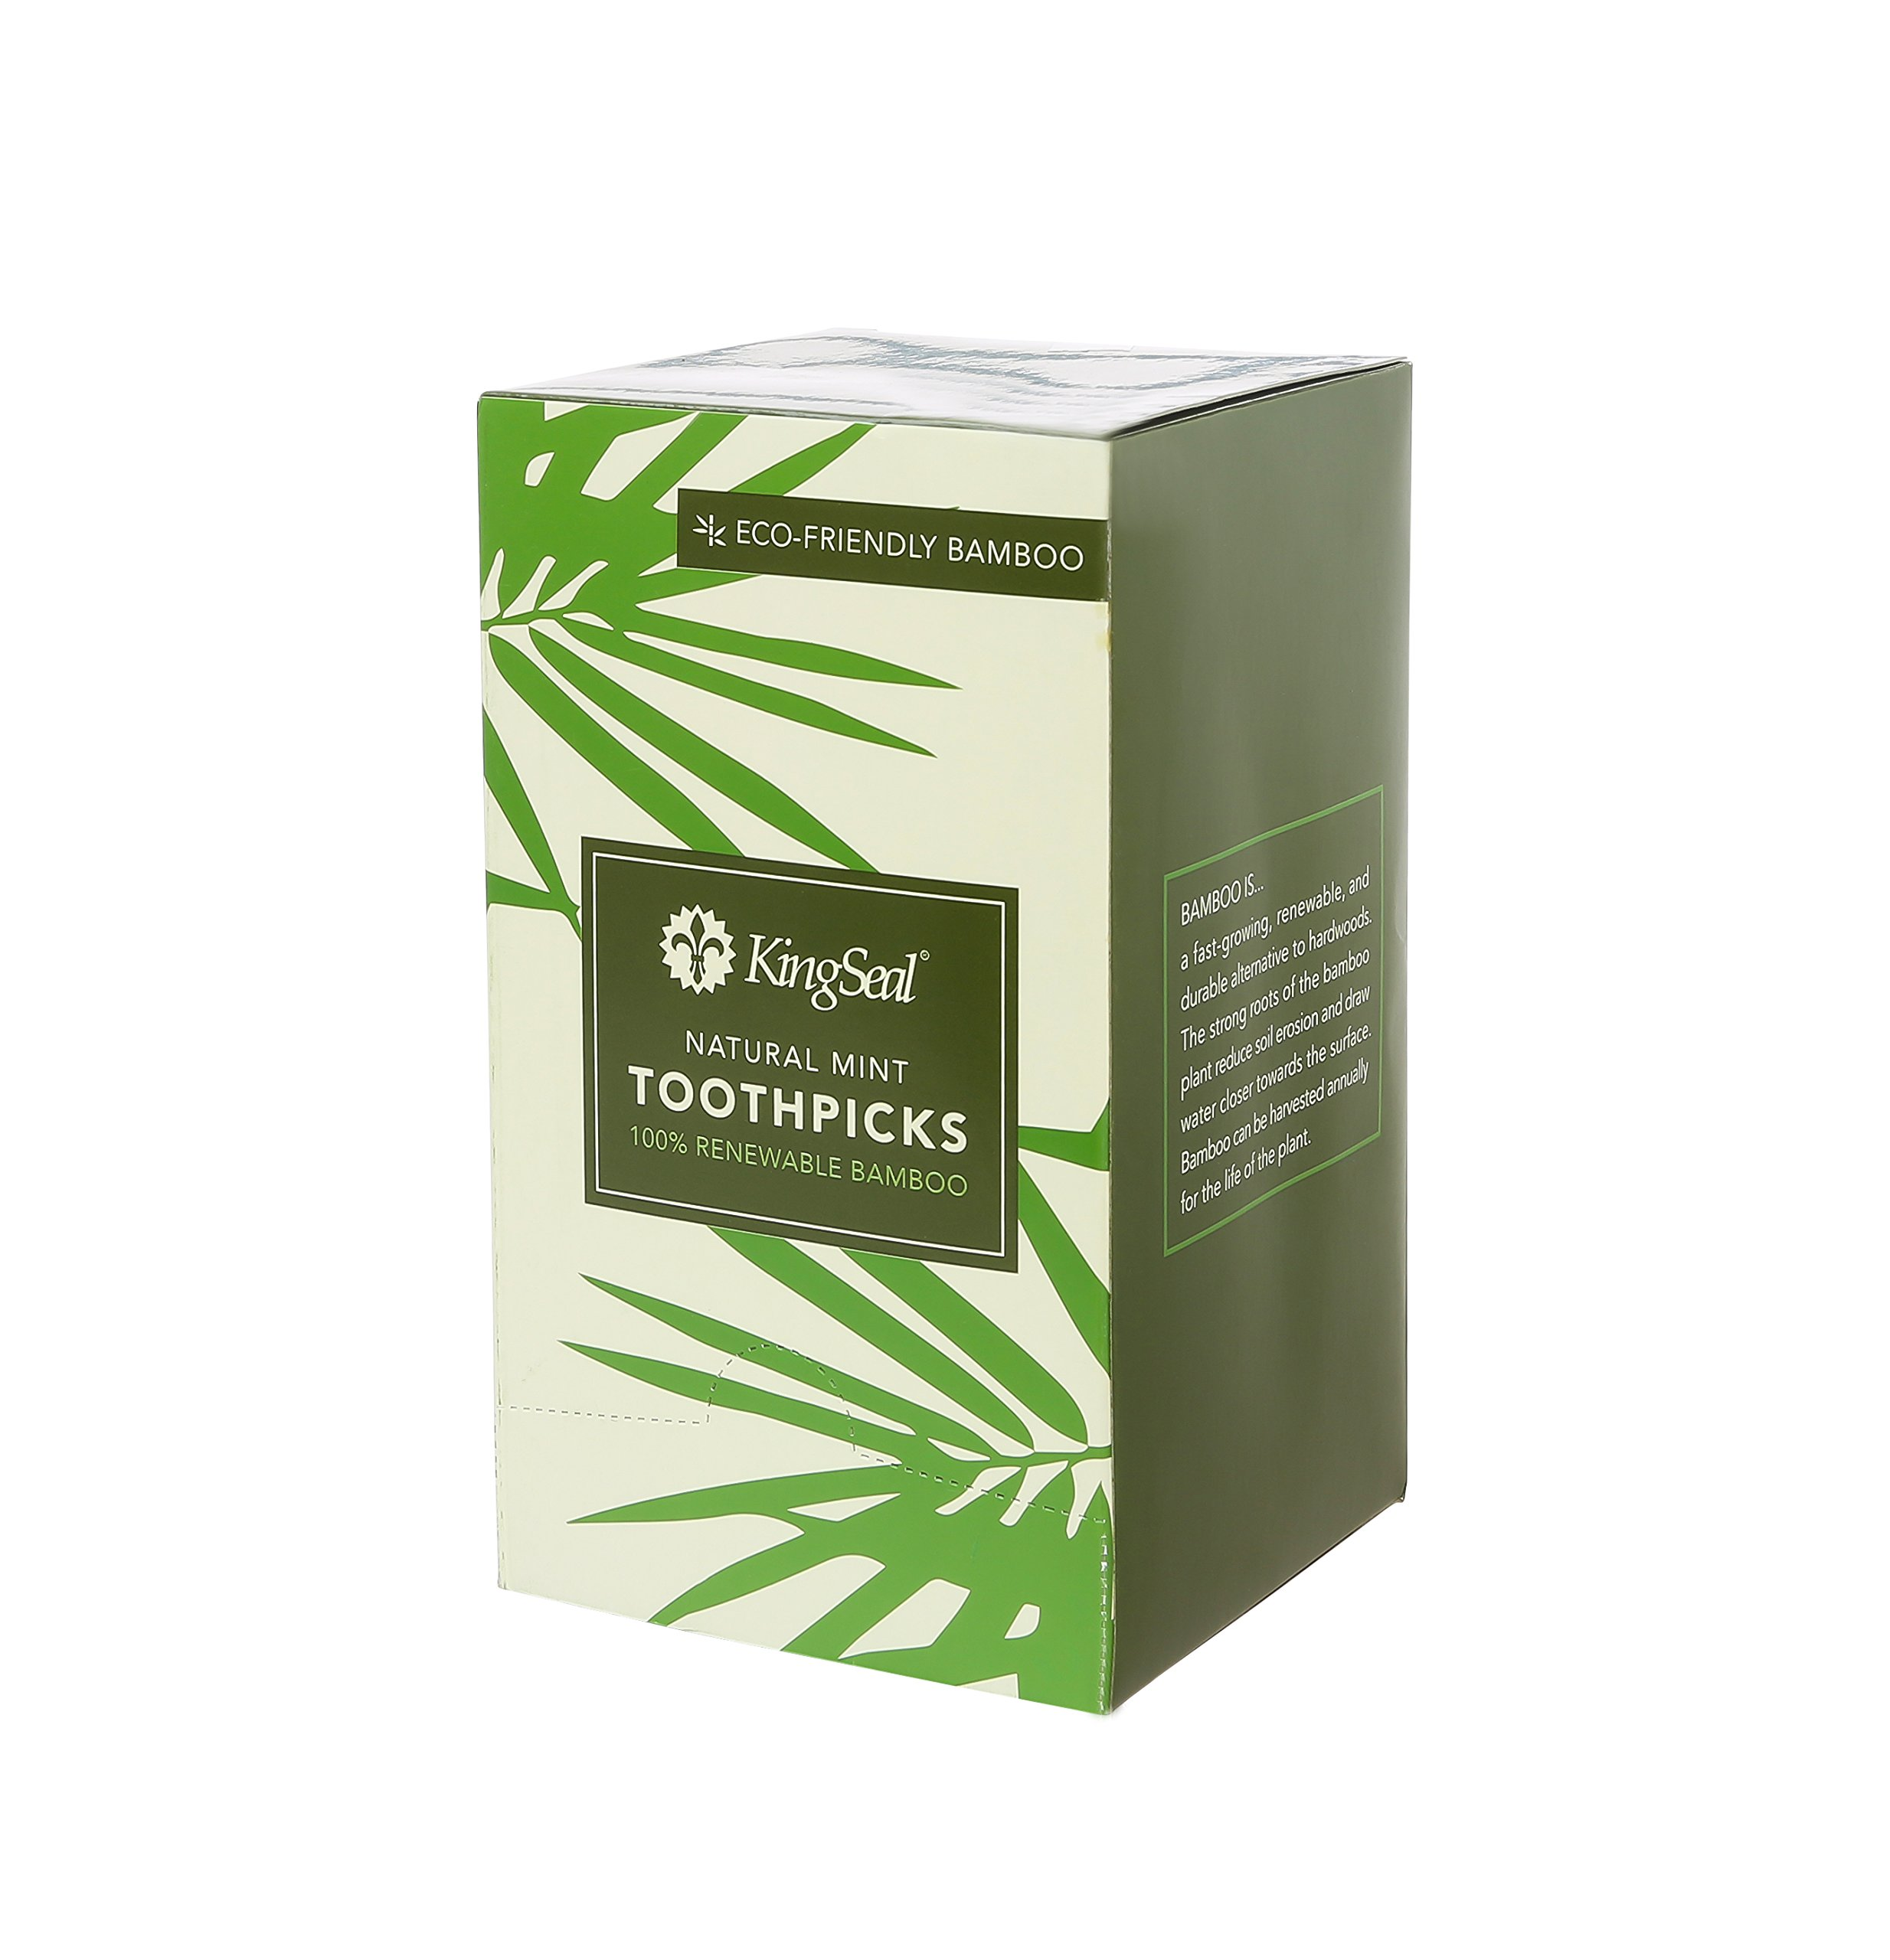 KingSeal 2.5 Inch Individually Paper Wrapped Mint Flavored Bamboo Toothpicks - 4 Pack/1000 per Pack, 100% Renewable